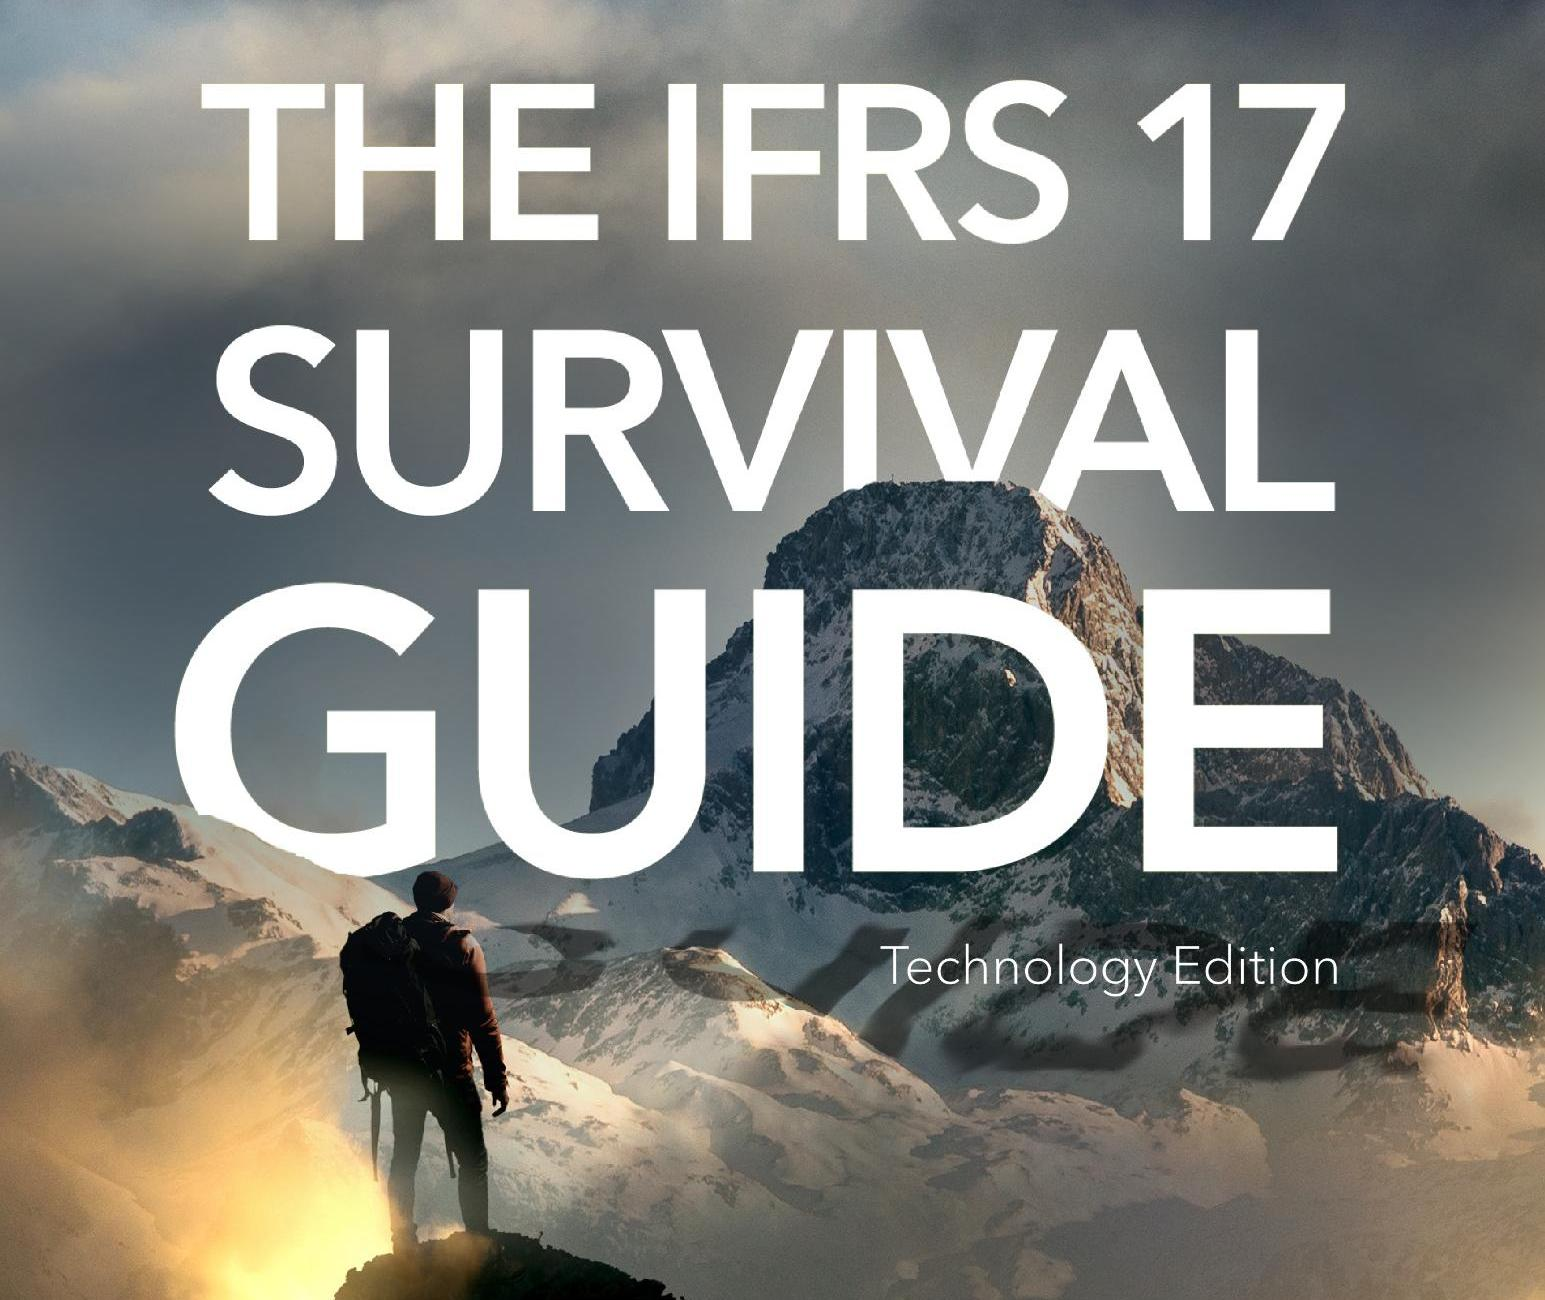 The IFRS 17 Survival Guide